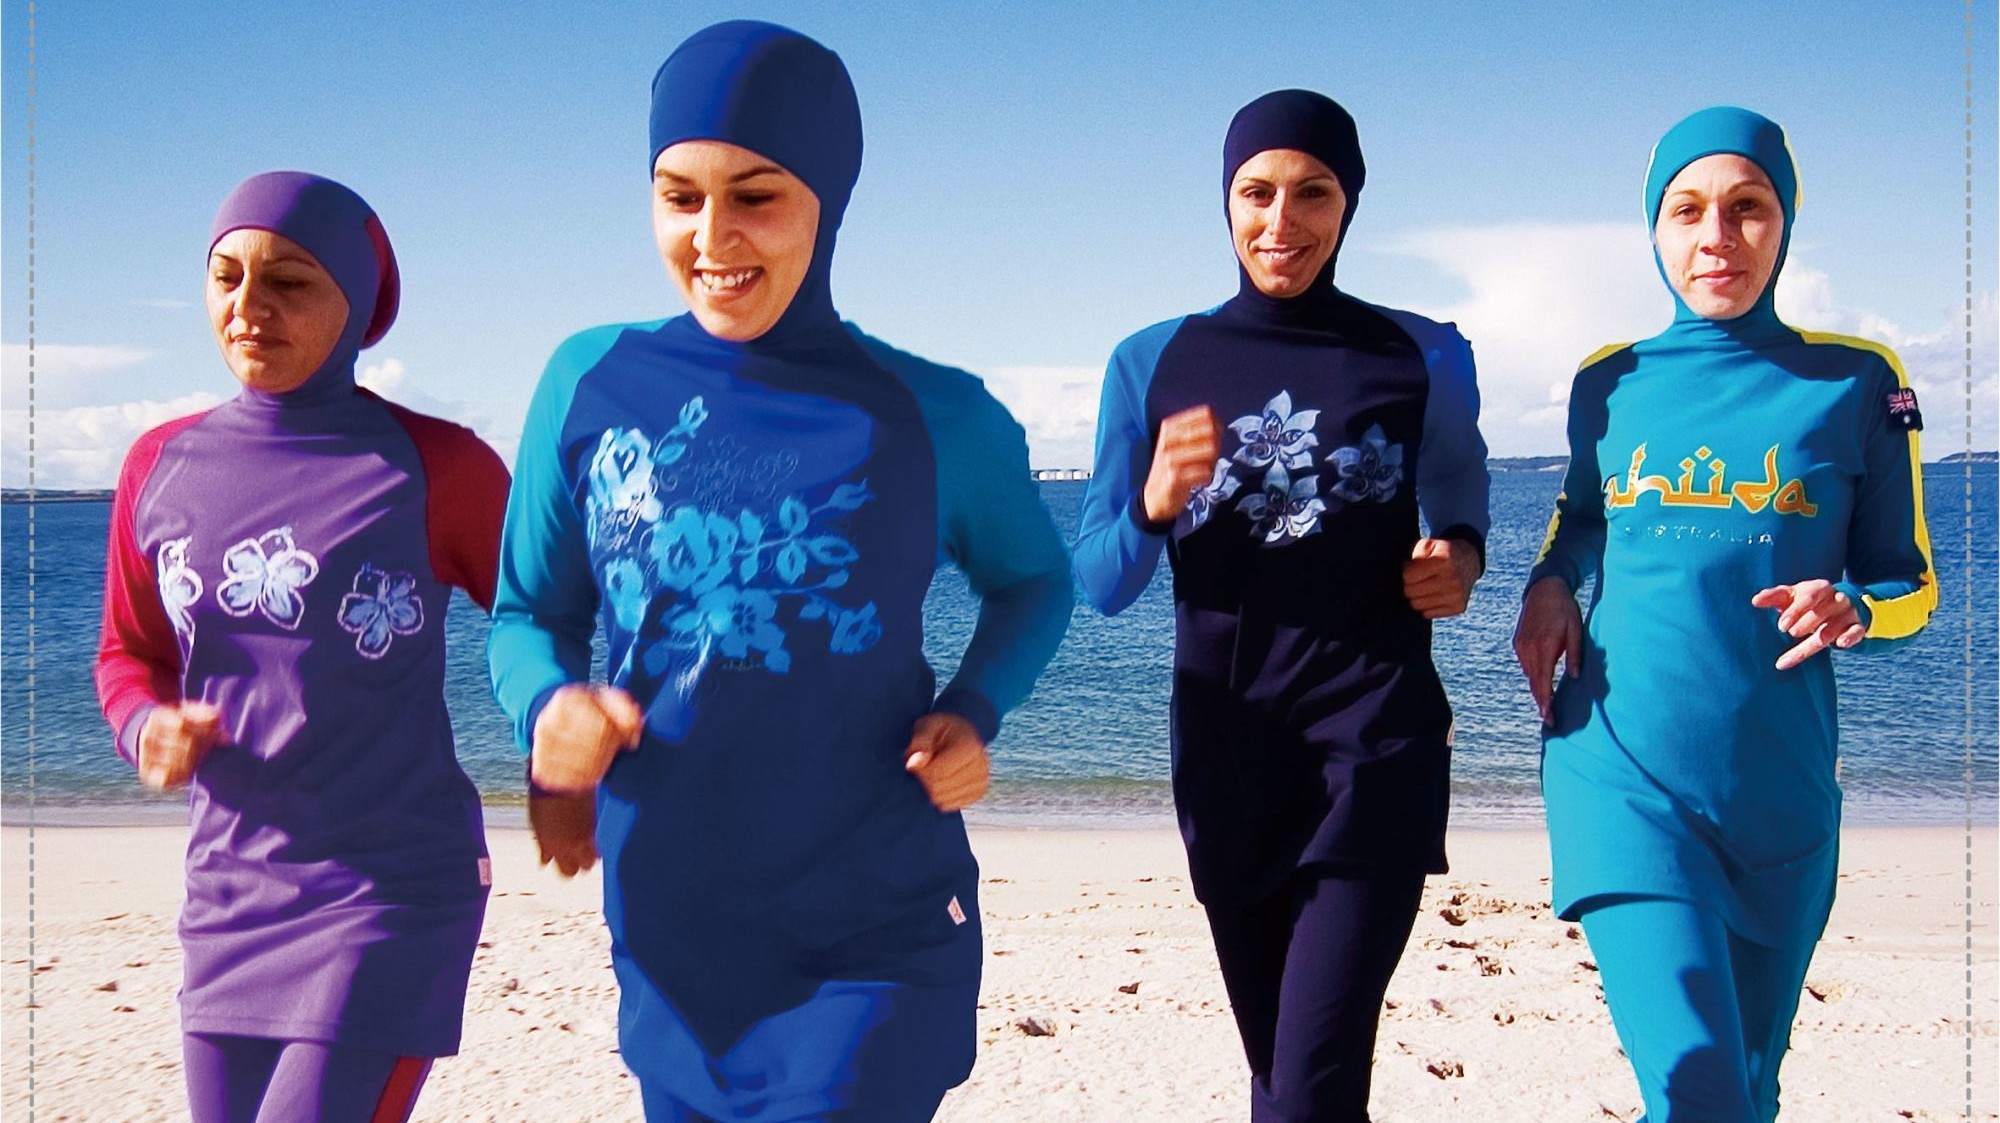 burkini creator speaks out on the french beach ban